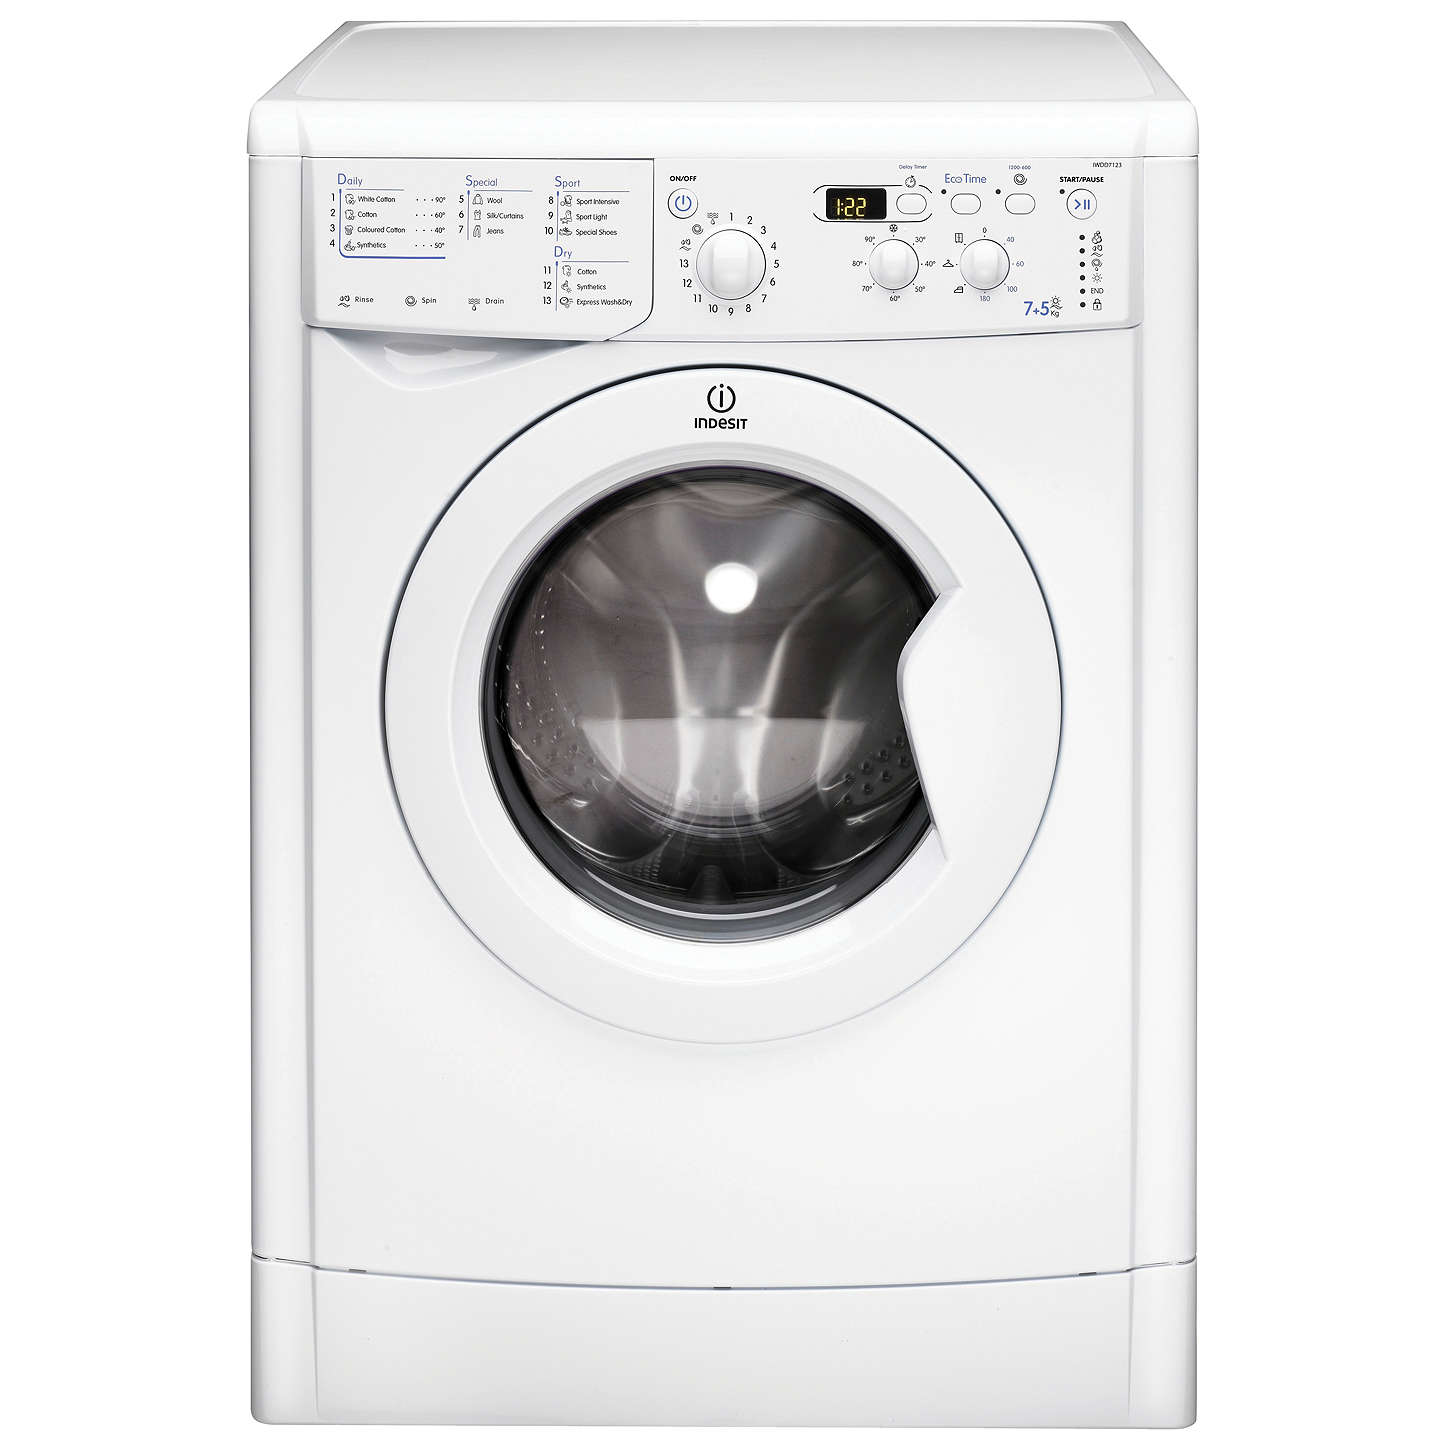 BuyIndesit IWDD7123 Washer Dryer, 7kg Wash/5kg Dry Load, B Energy Rating, 1200rpm Spin, White Online at johnlewis.com